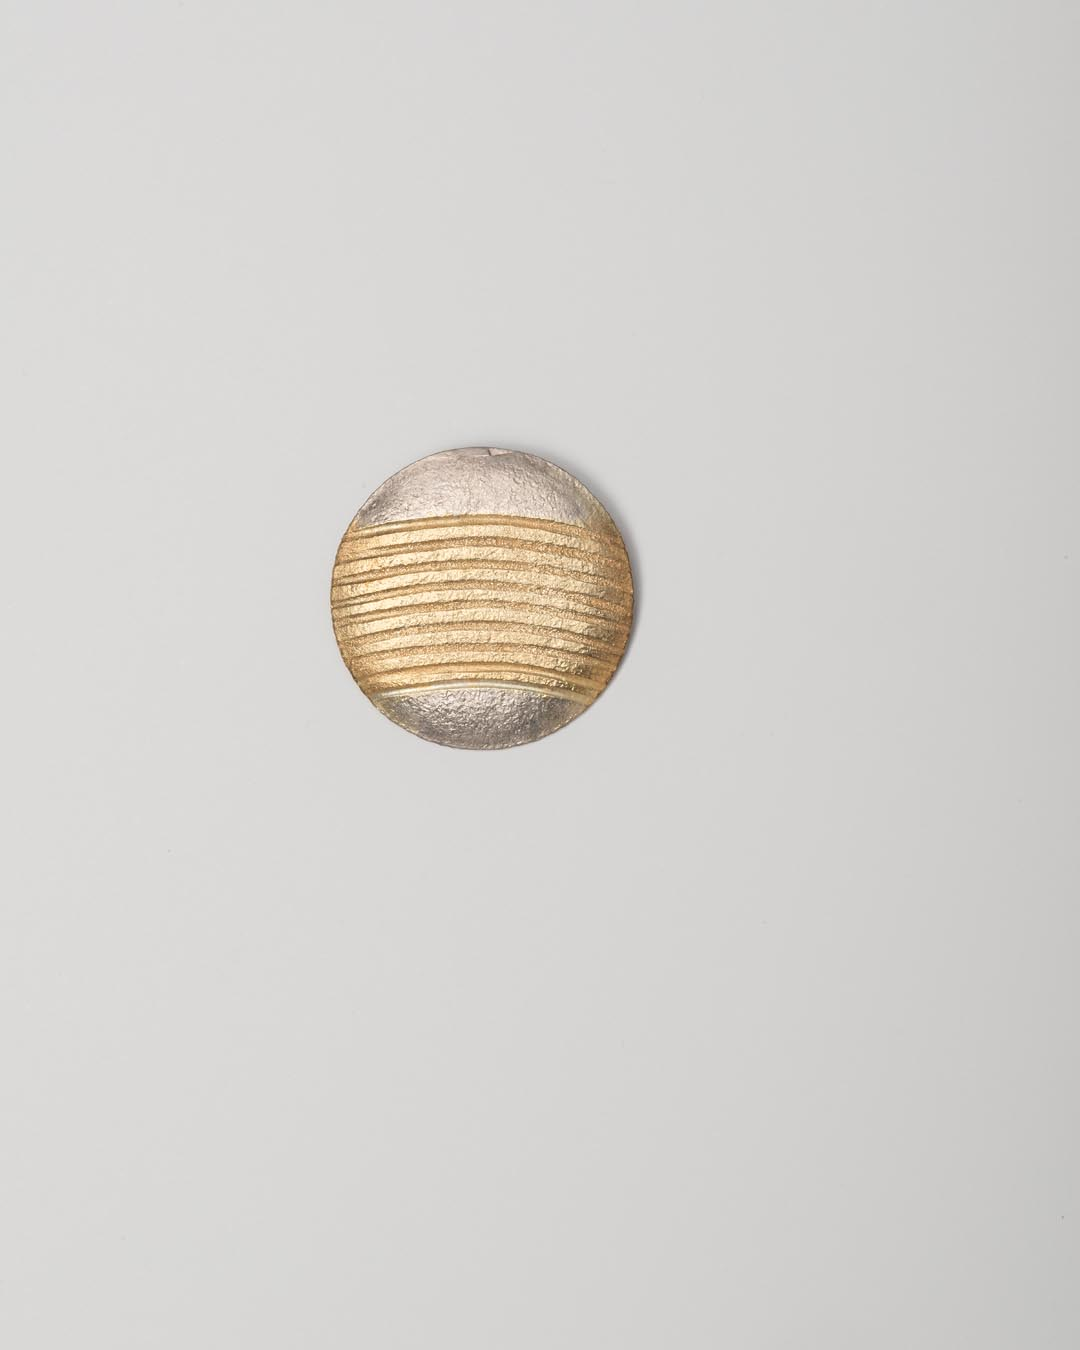 Yasuki Hiramatsu, untitled, brooch; gold-plated silver, ø 36 x 2 mm, €750